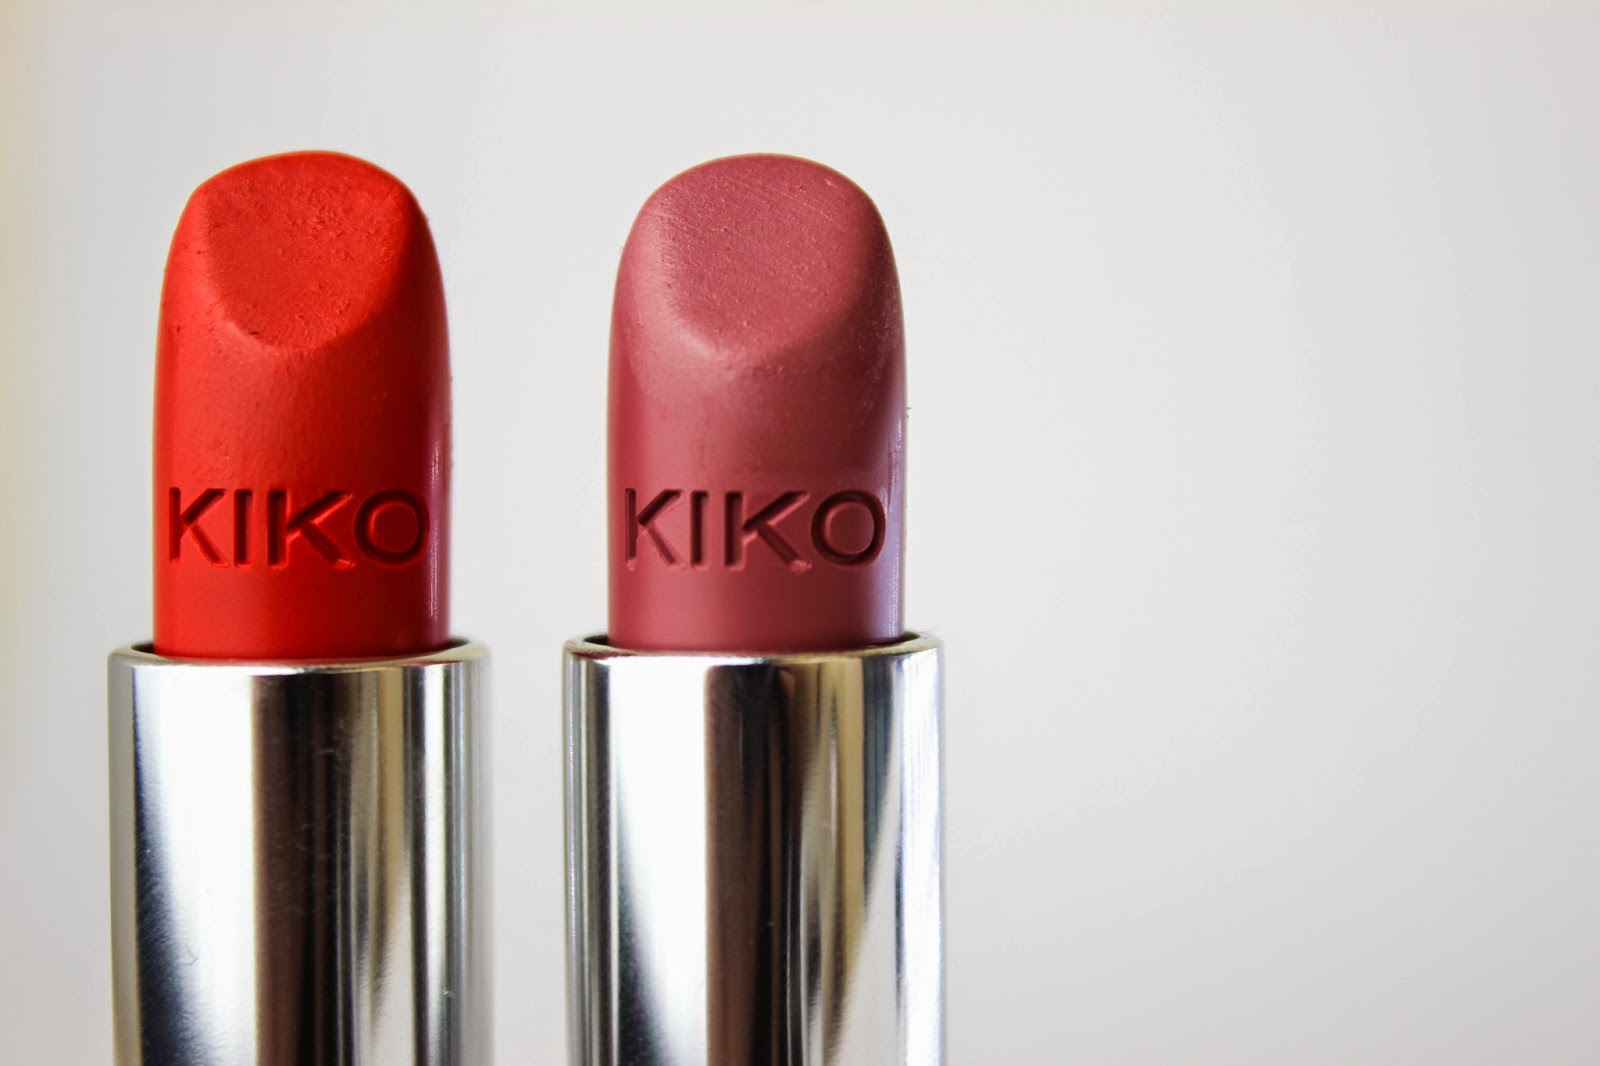 KIKO Velvet Matte Lipsticks Review Swatch 605 Orange Red 613 Pink Carnation 1